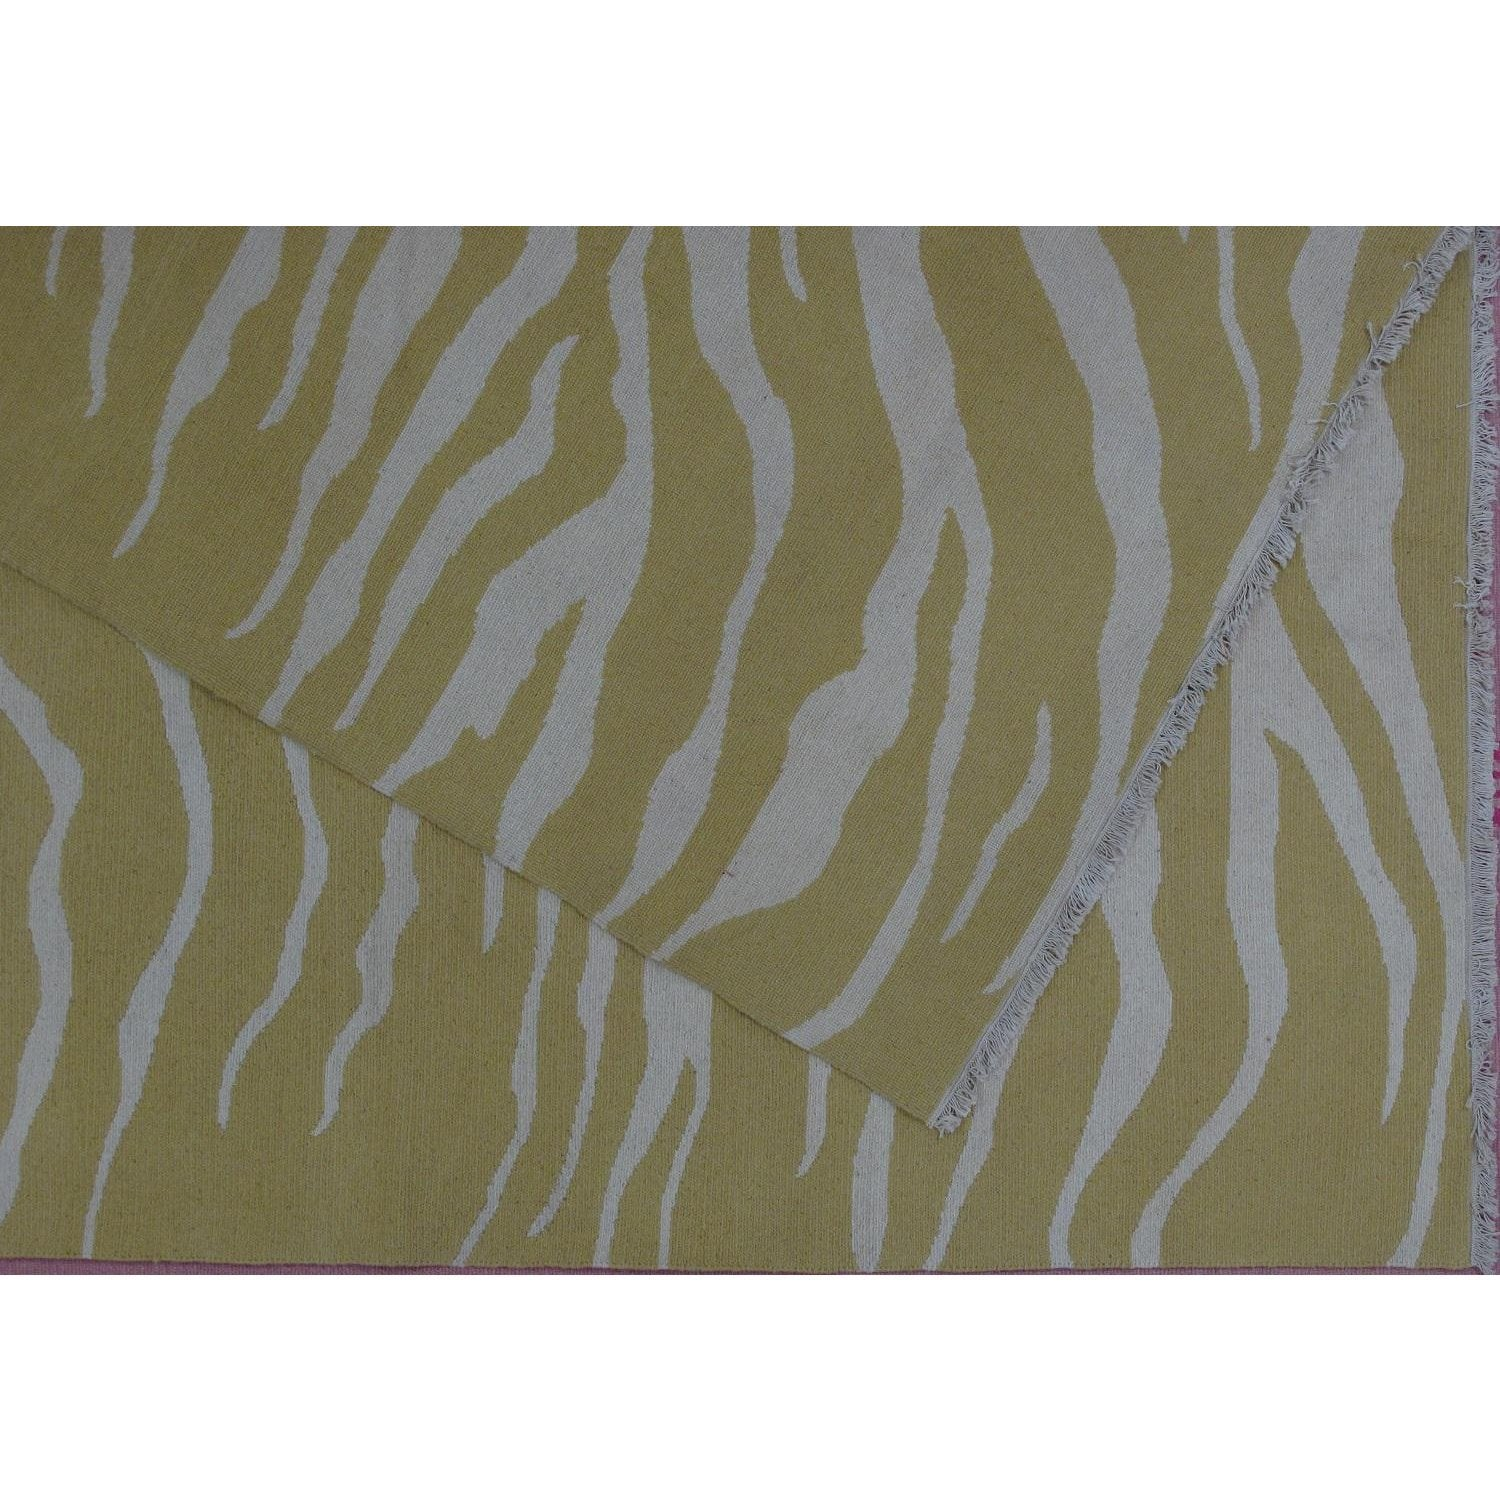 Tiger Stripe Soumak Design Hand Woven Wool Rug - 9' X 12'